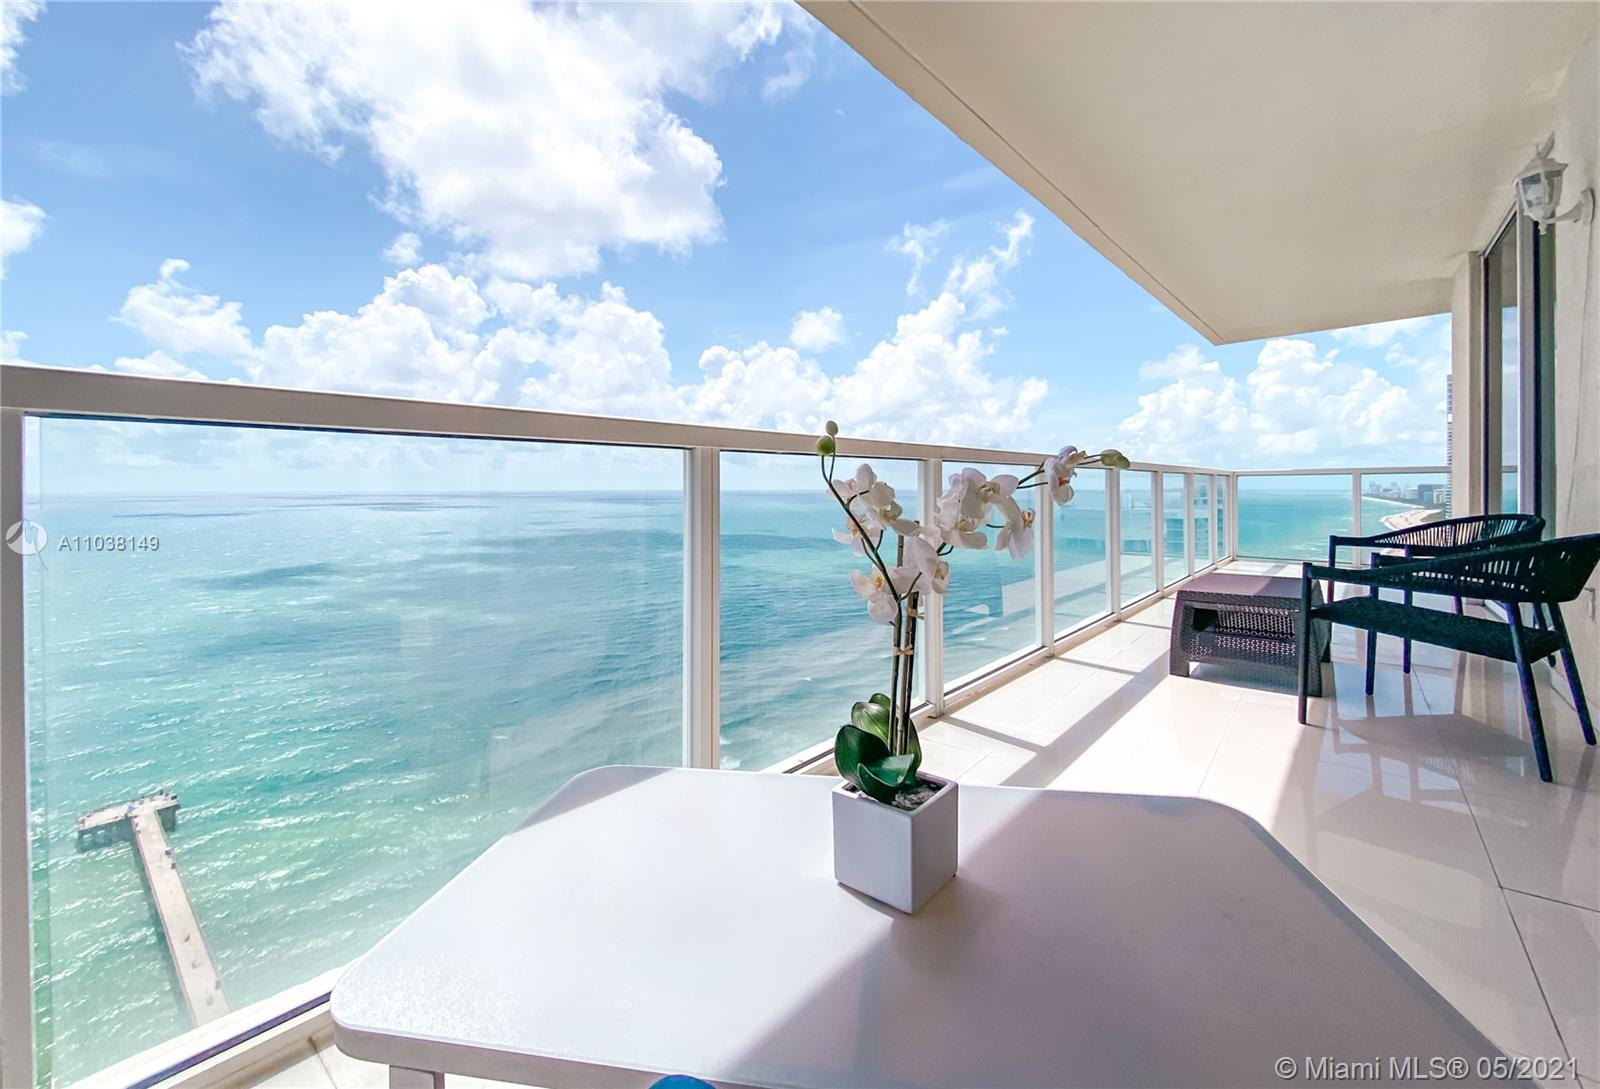 17749 Collins Ave, Unit #701 Luxury Real Estate